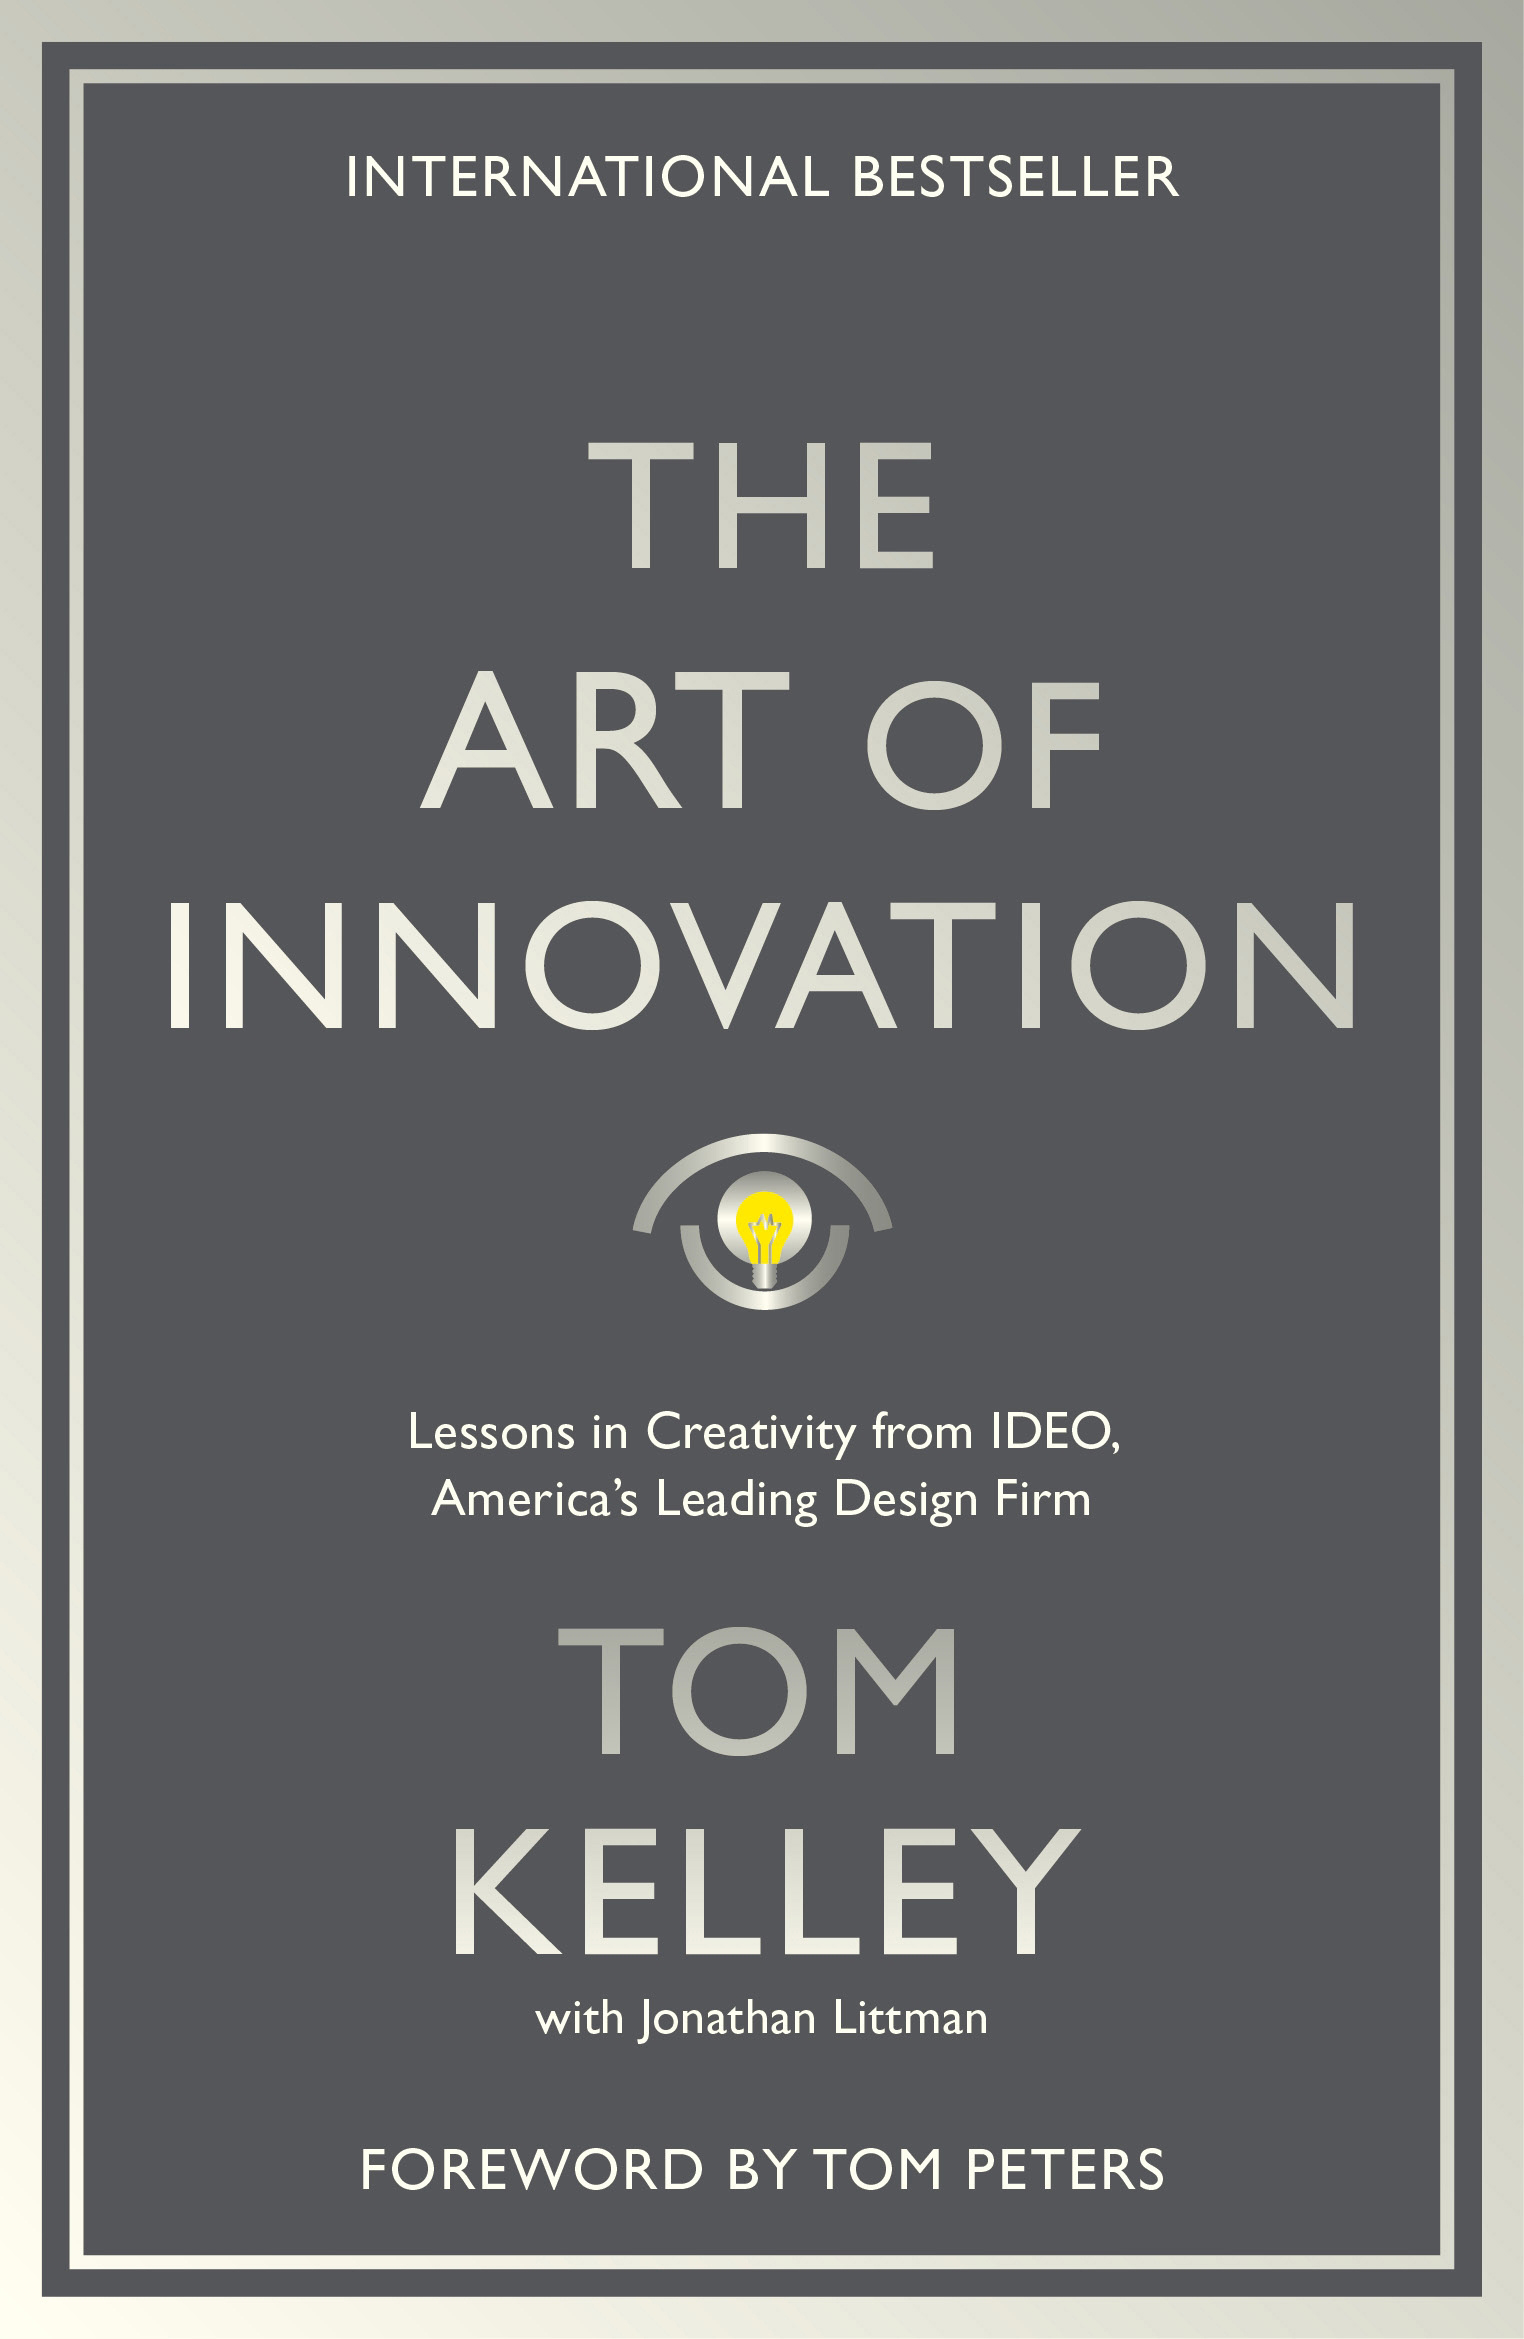 tom kelleys unique product development process at ideo Ideo, the widely admired, award-winning design and development firm that brought the world the apple mouse, polaroid's i-zone instant camera, the palm v, and hundreds of other cutting-edge products and services, reveals its secrets for fostering a culture and process of continuous innovation there .